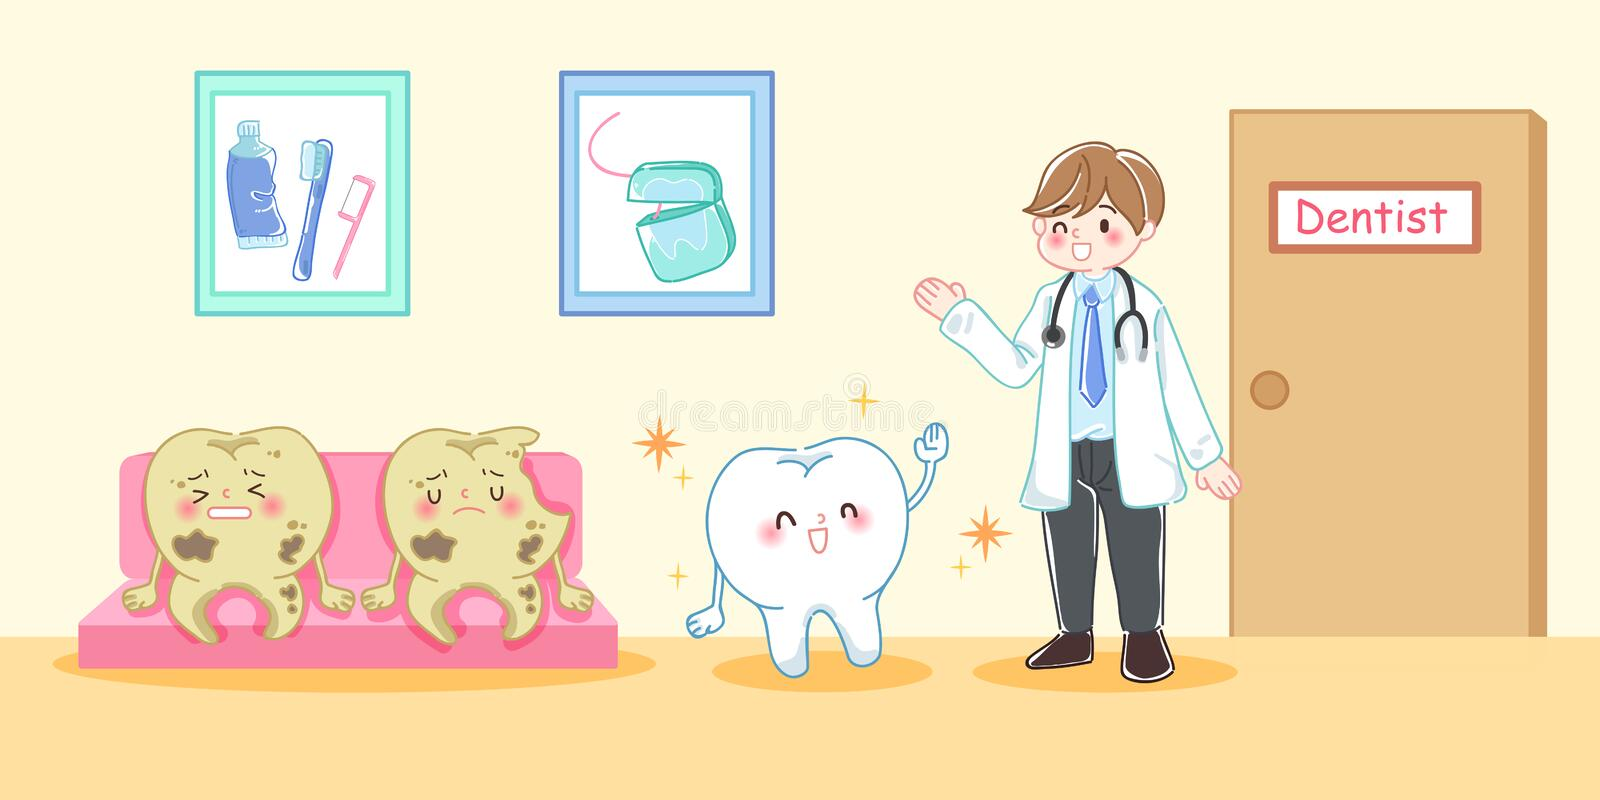 Tooth decay problem royalty free illustration